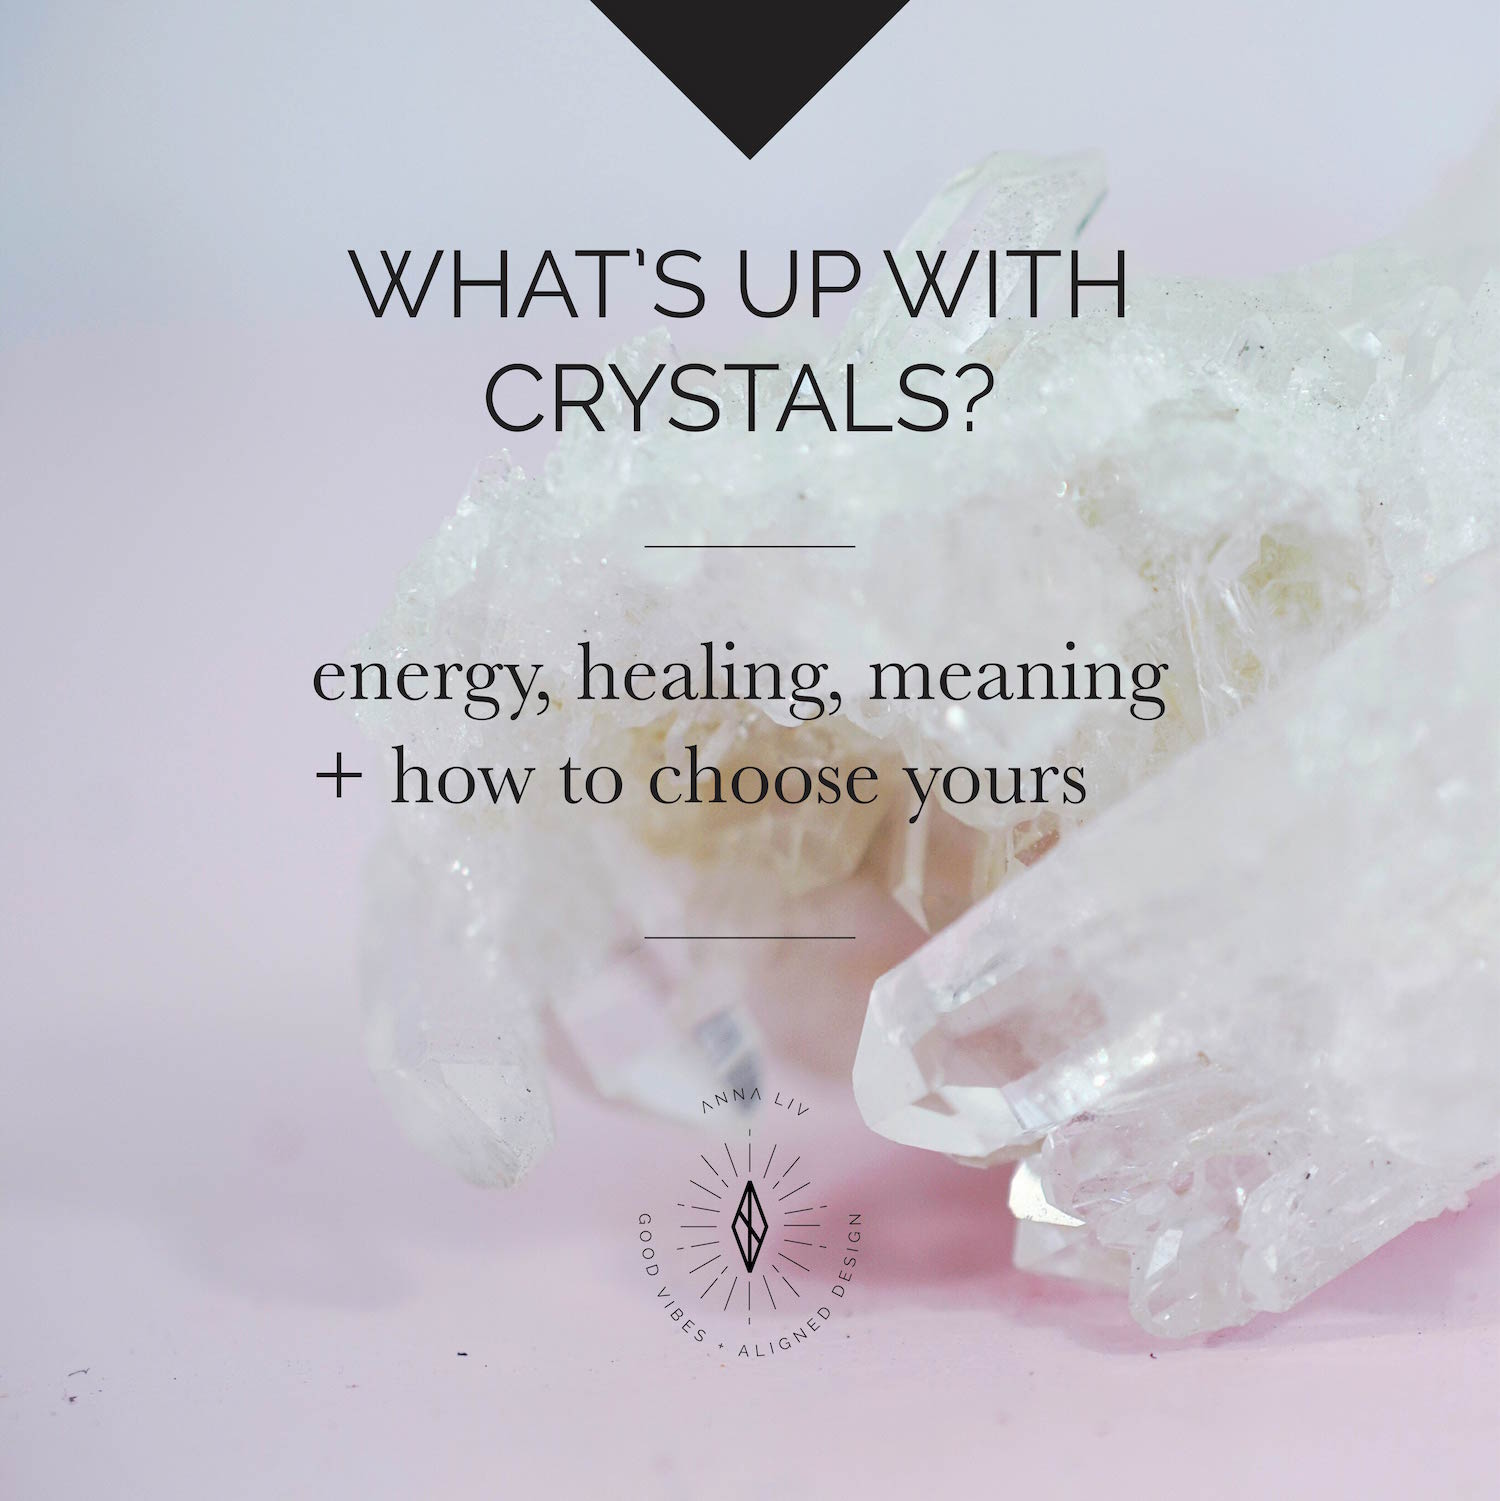 A basic guide to vibing with crystals